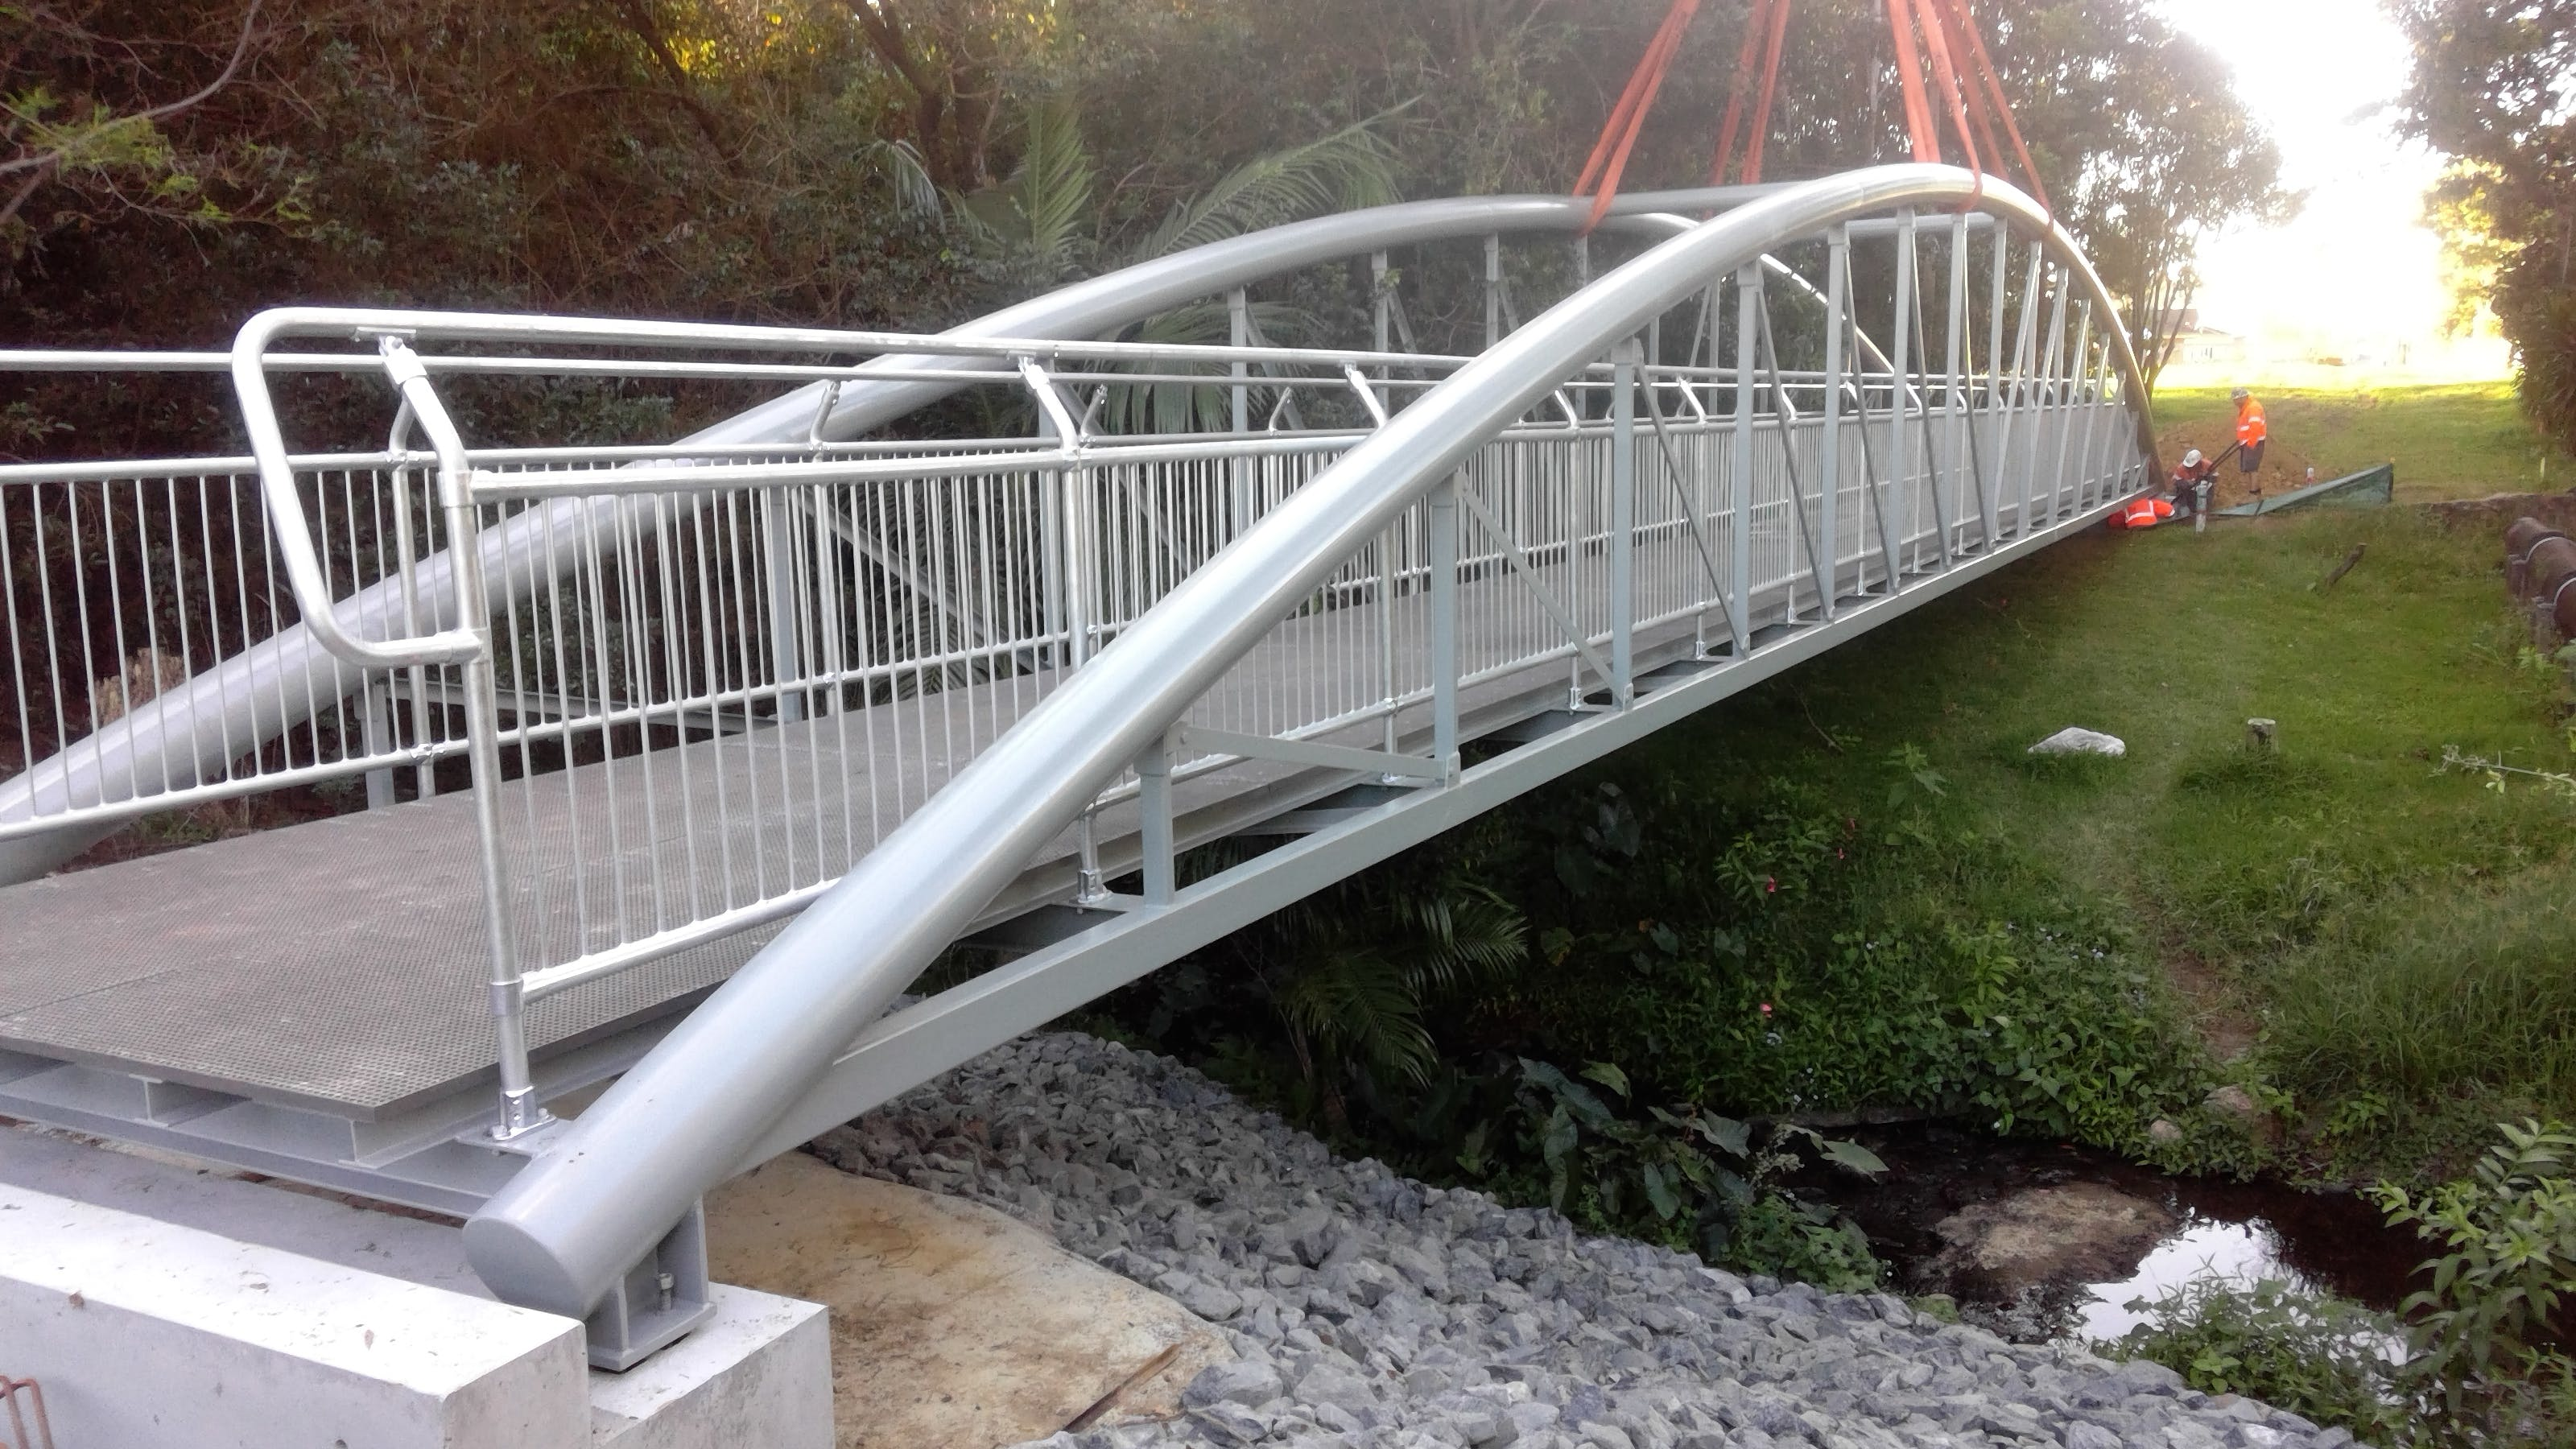 The new bridge linking Loaders Lane with West Coffs District Park